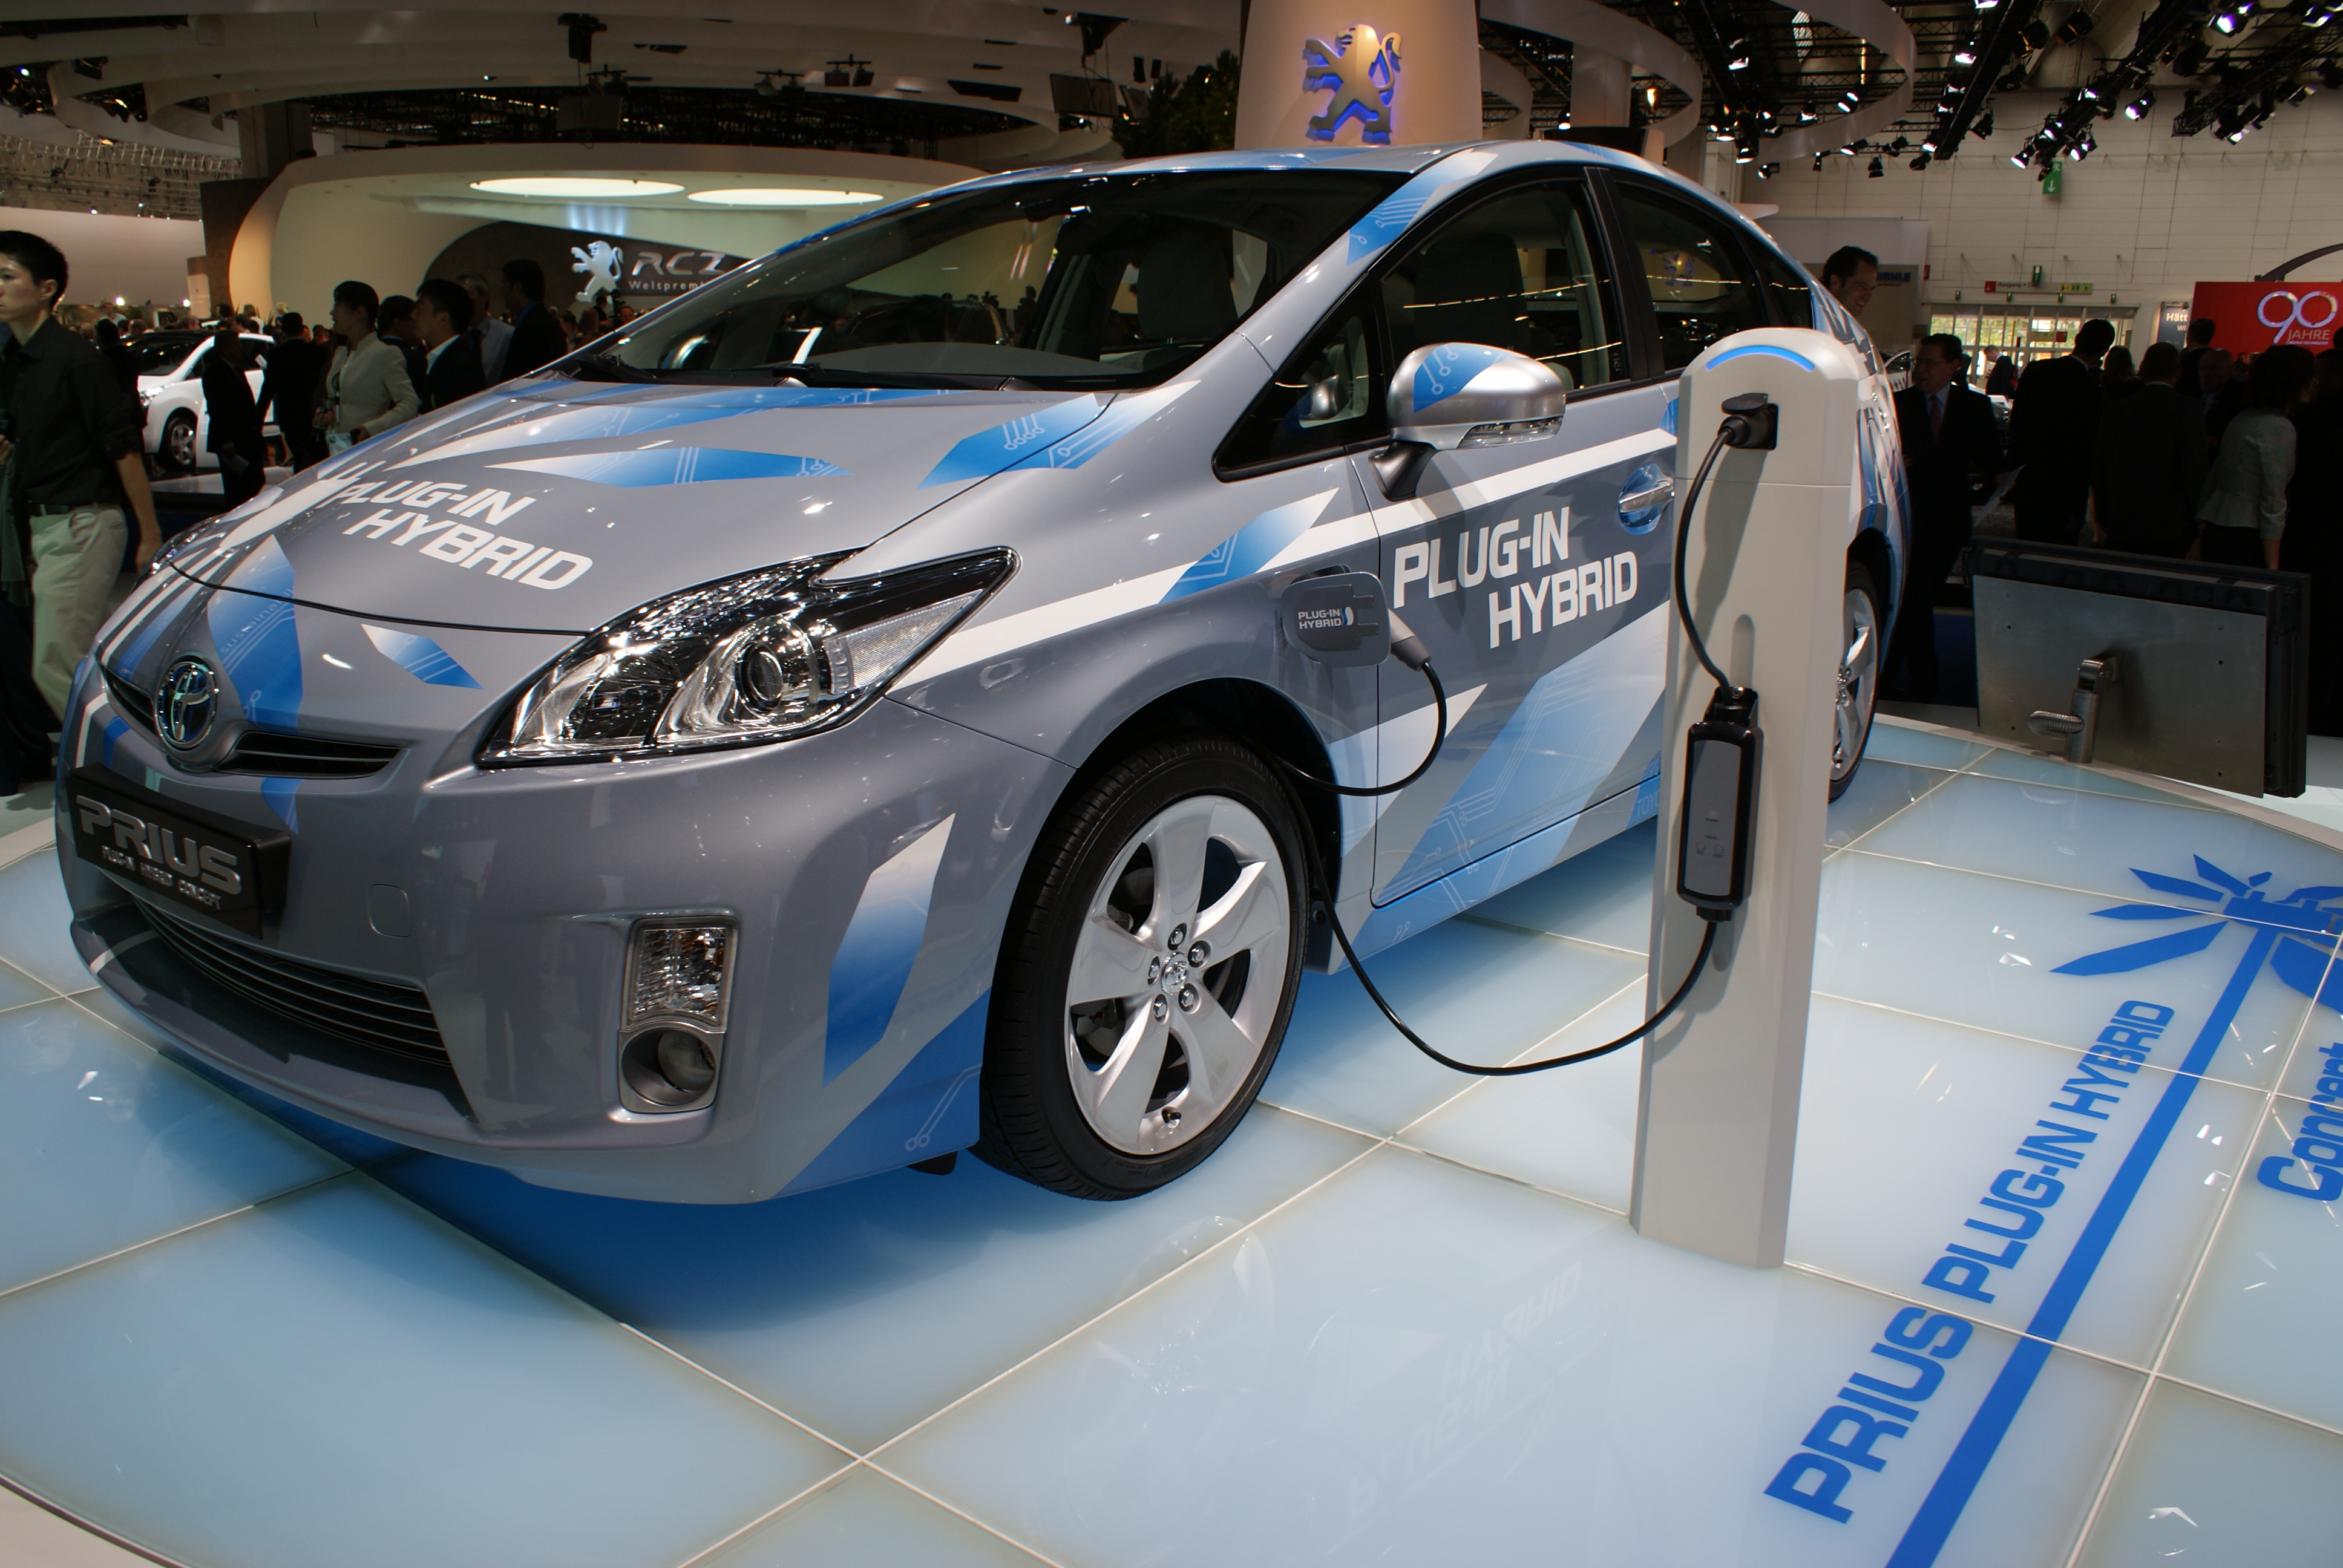 Toyota Prius Plug-in Hybrid mod specifications